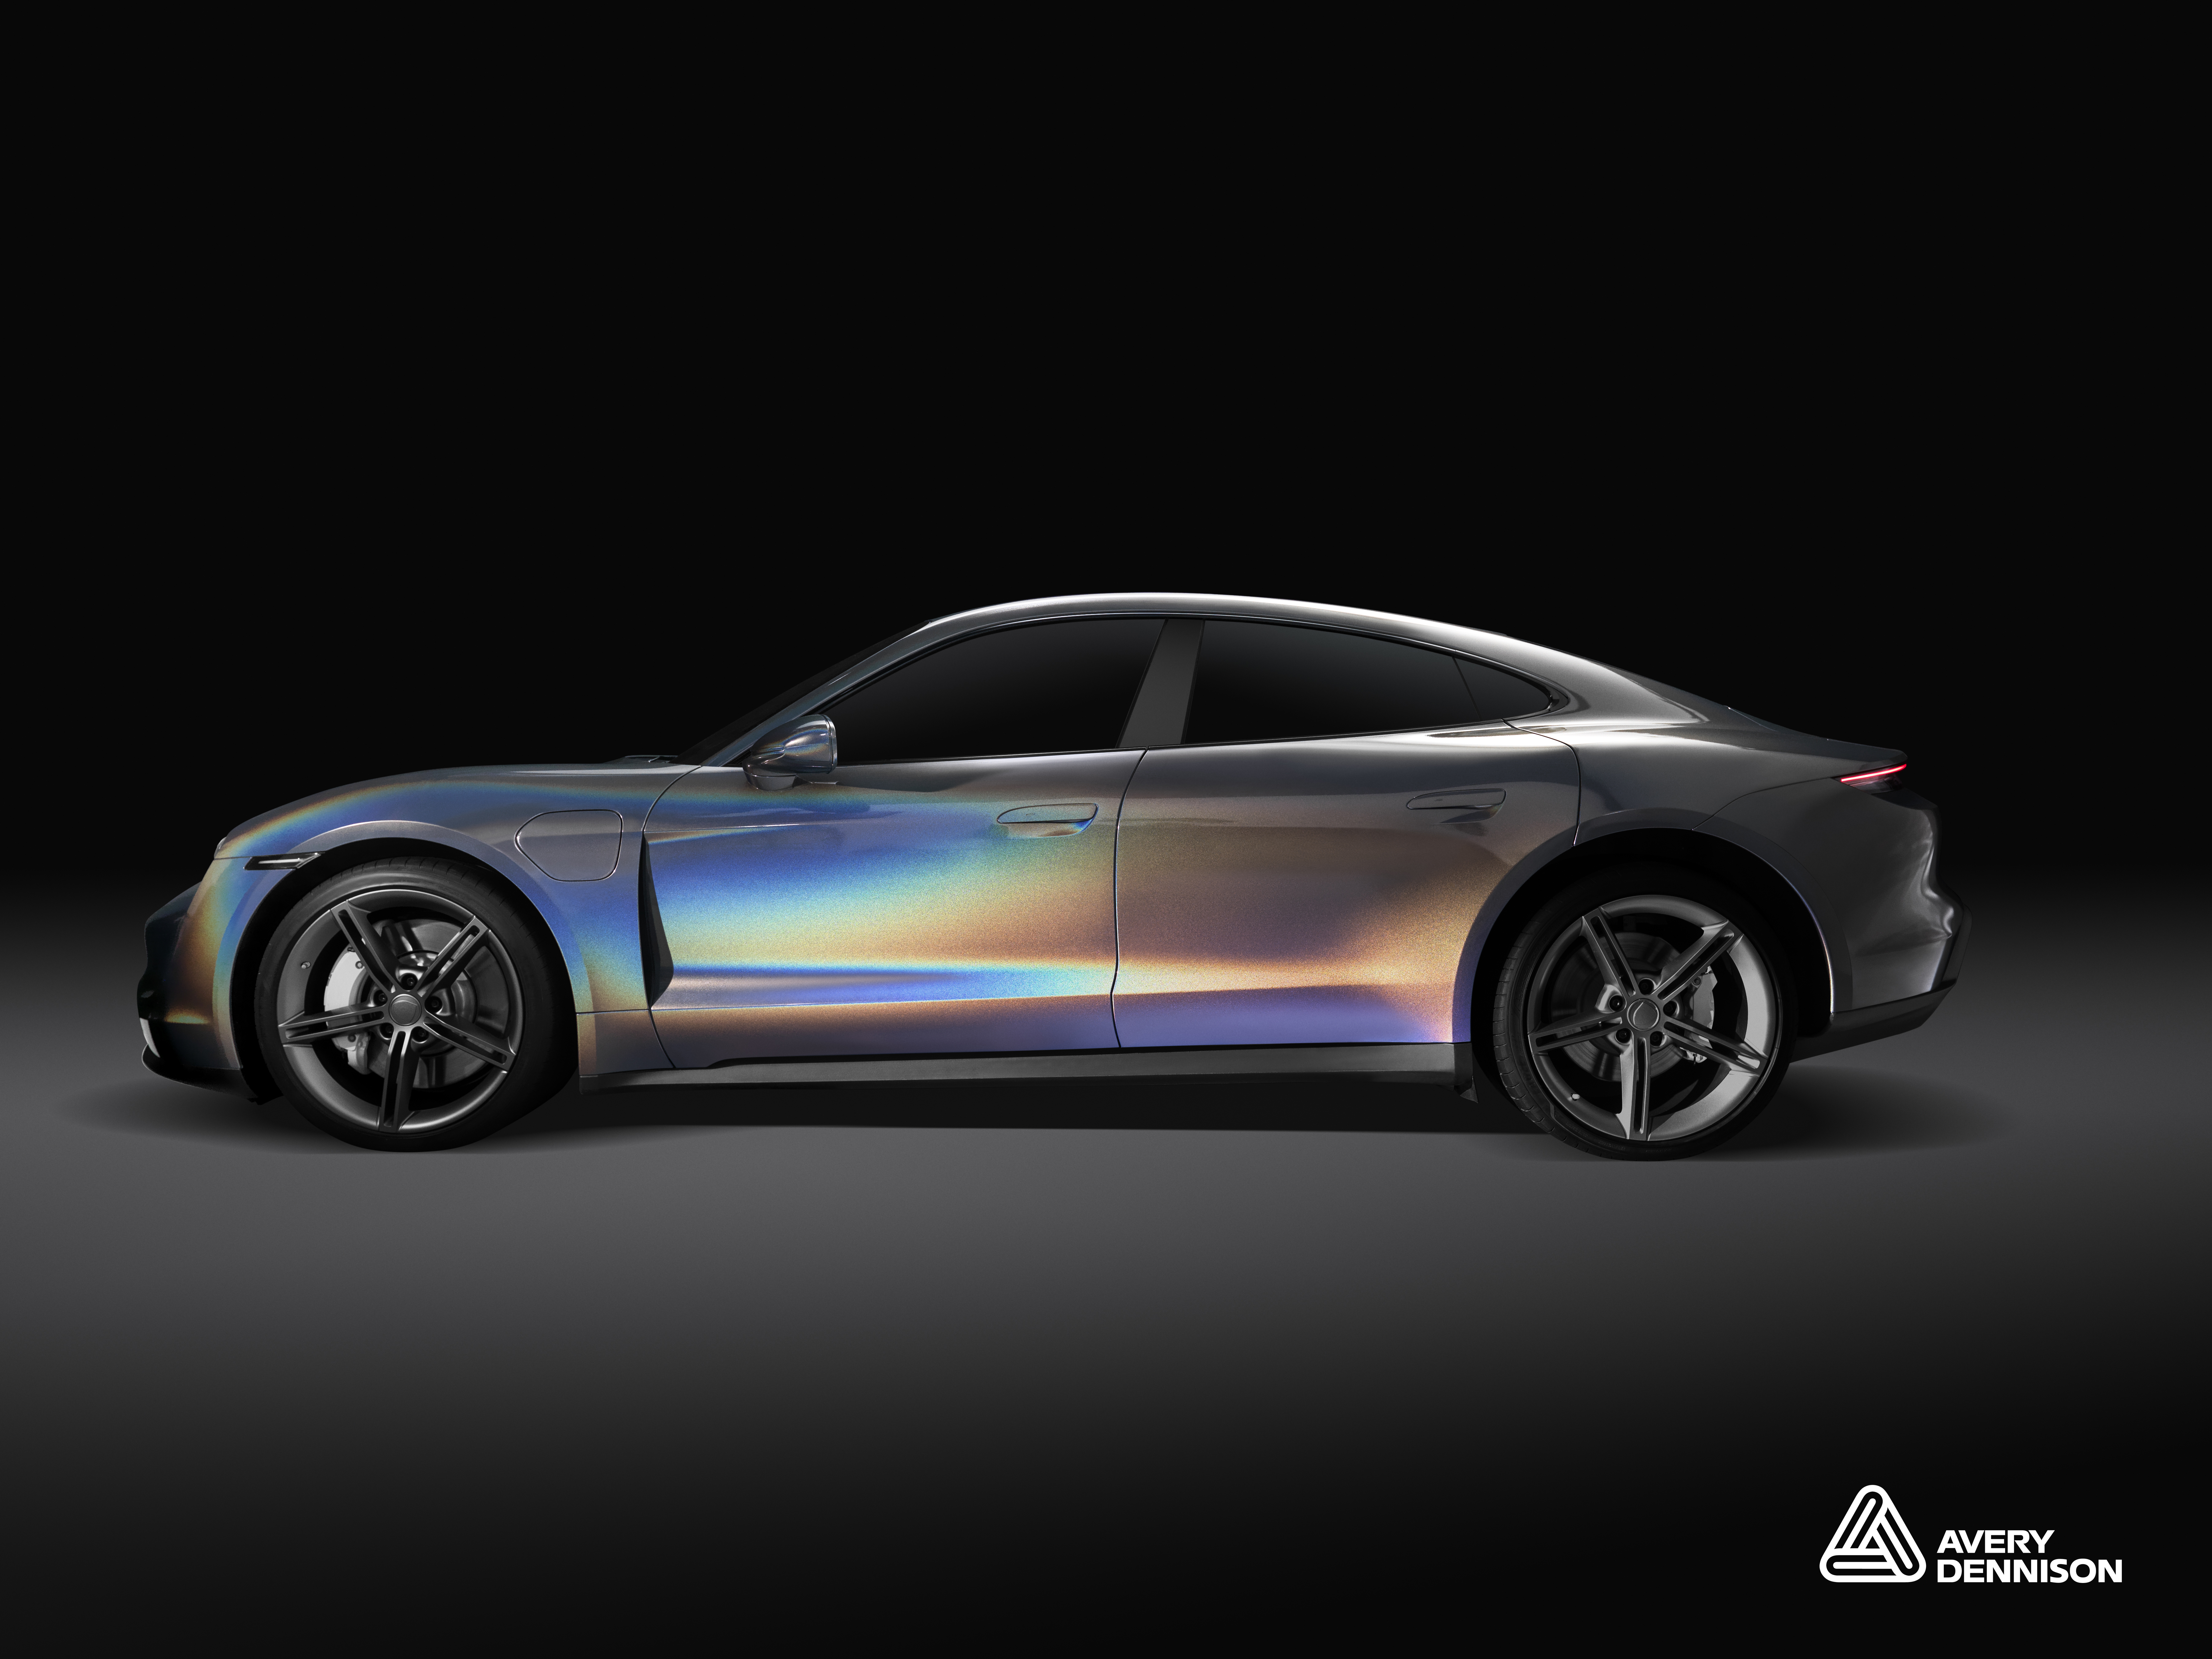 Spandex adds four new eye catching colours from Avery Dennison Supreme Wrapping Film to its vehicle wrap portfolio